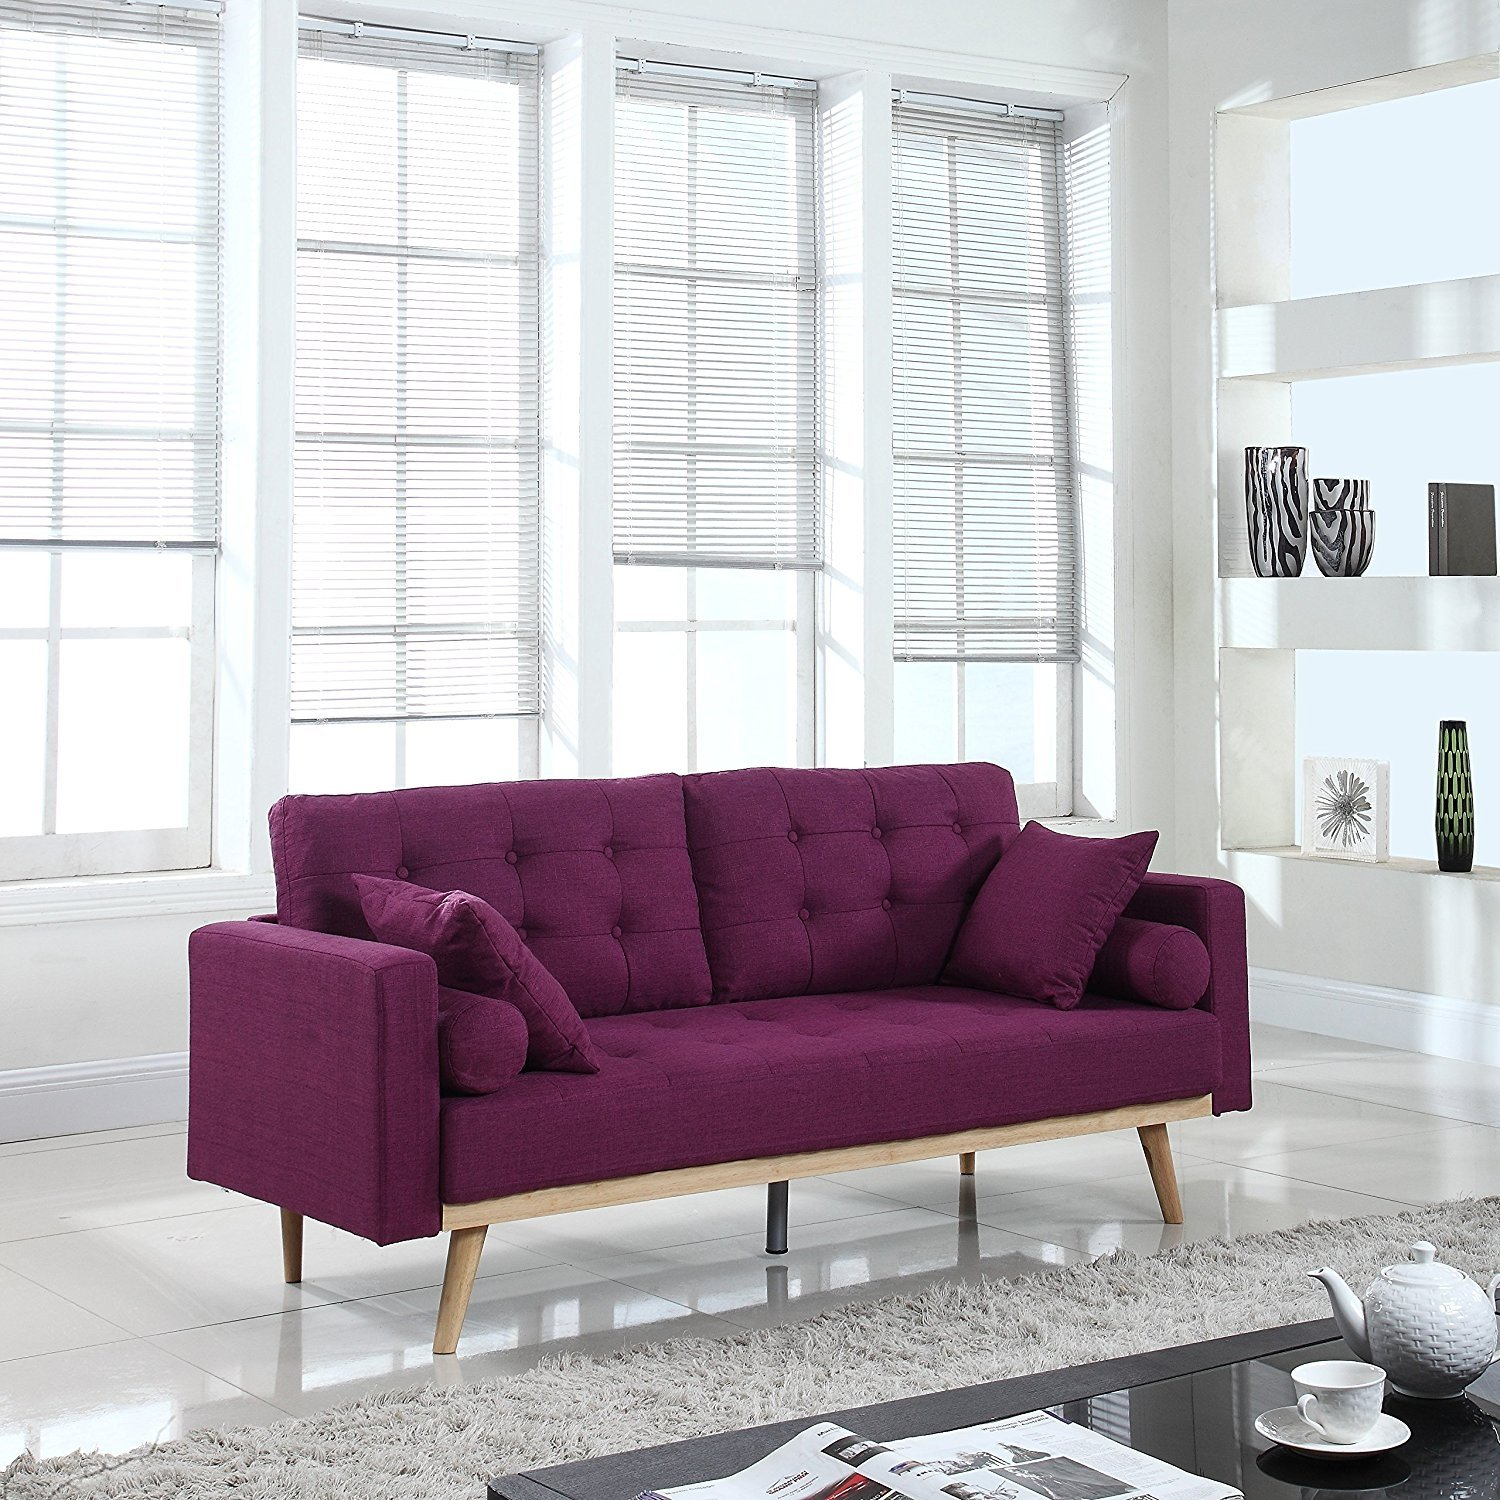 Details About Mid Century Modern Tufted Linen Fabric Sofa Wooden Frame Purple